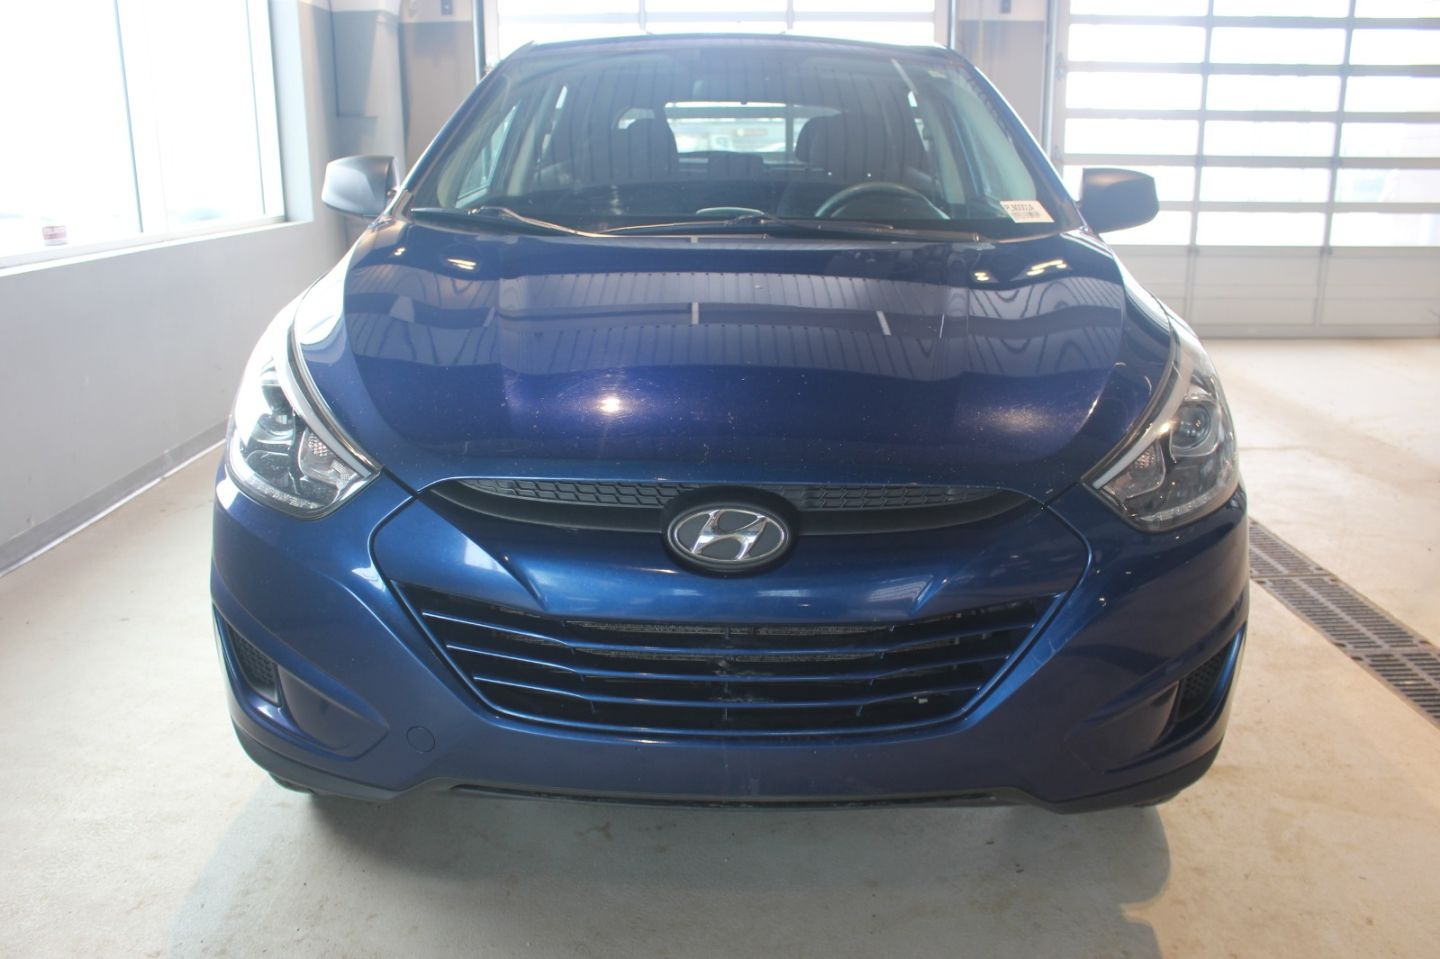 2014 Hyundai Tucson GL for sale in Spruce Grove, Alberta